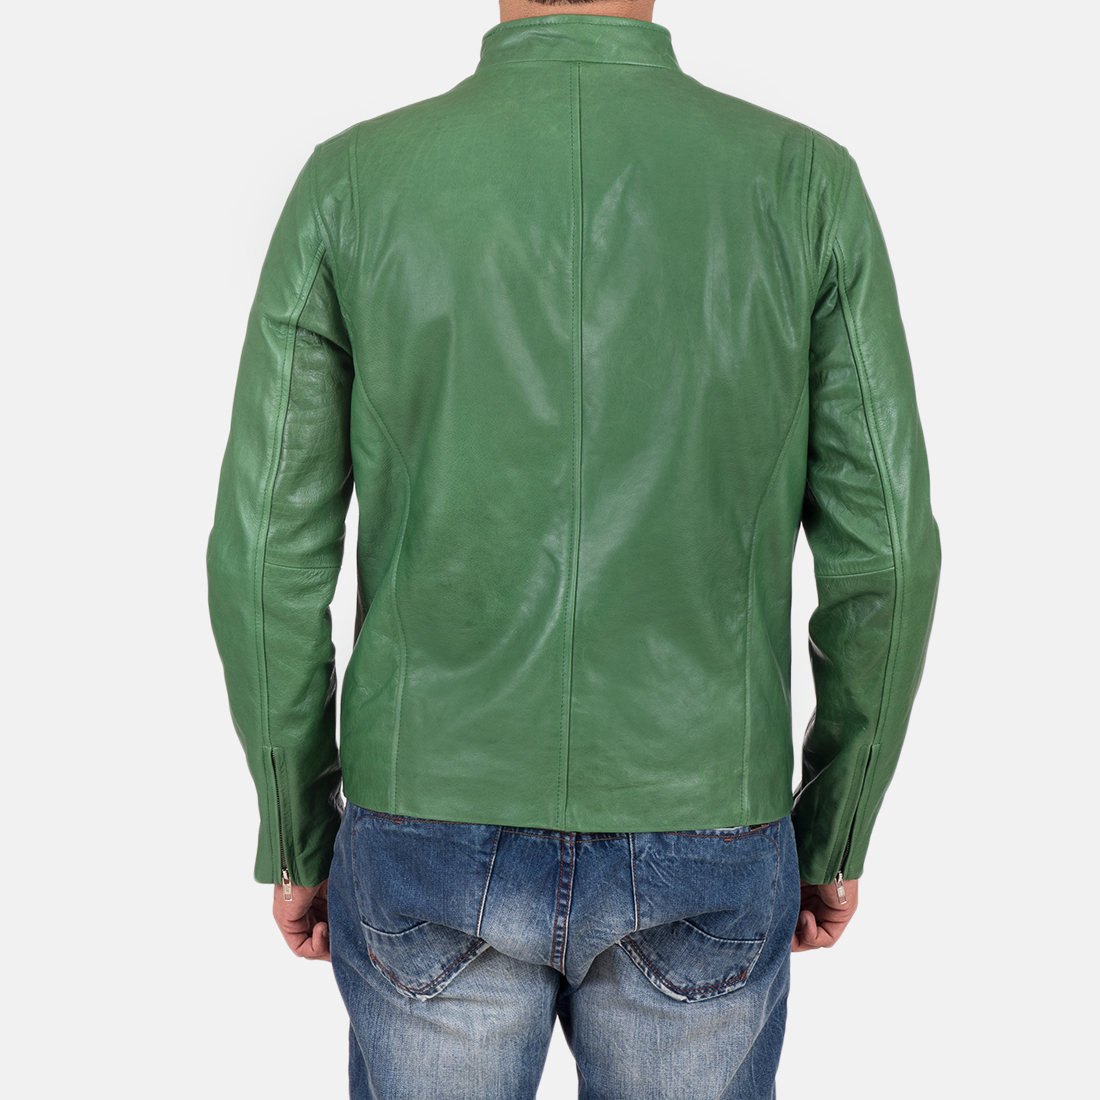 Mens Ionic Green Leather Jacket 6